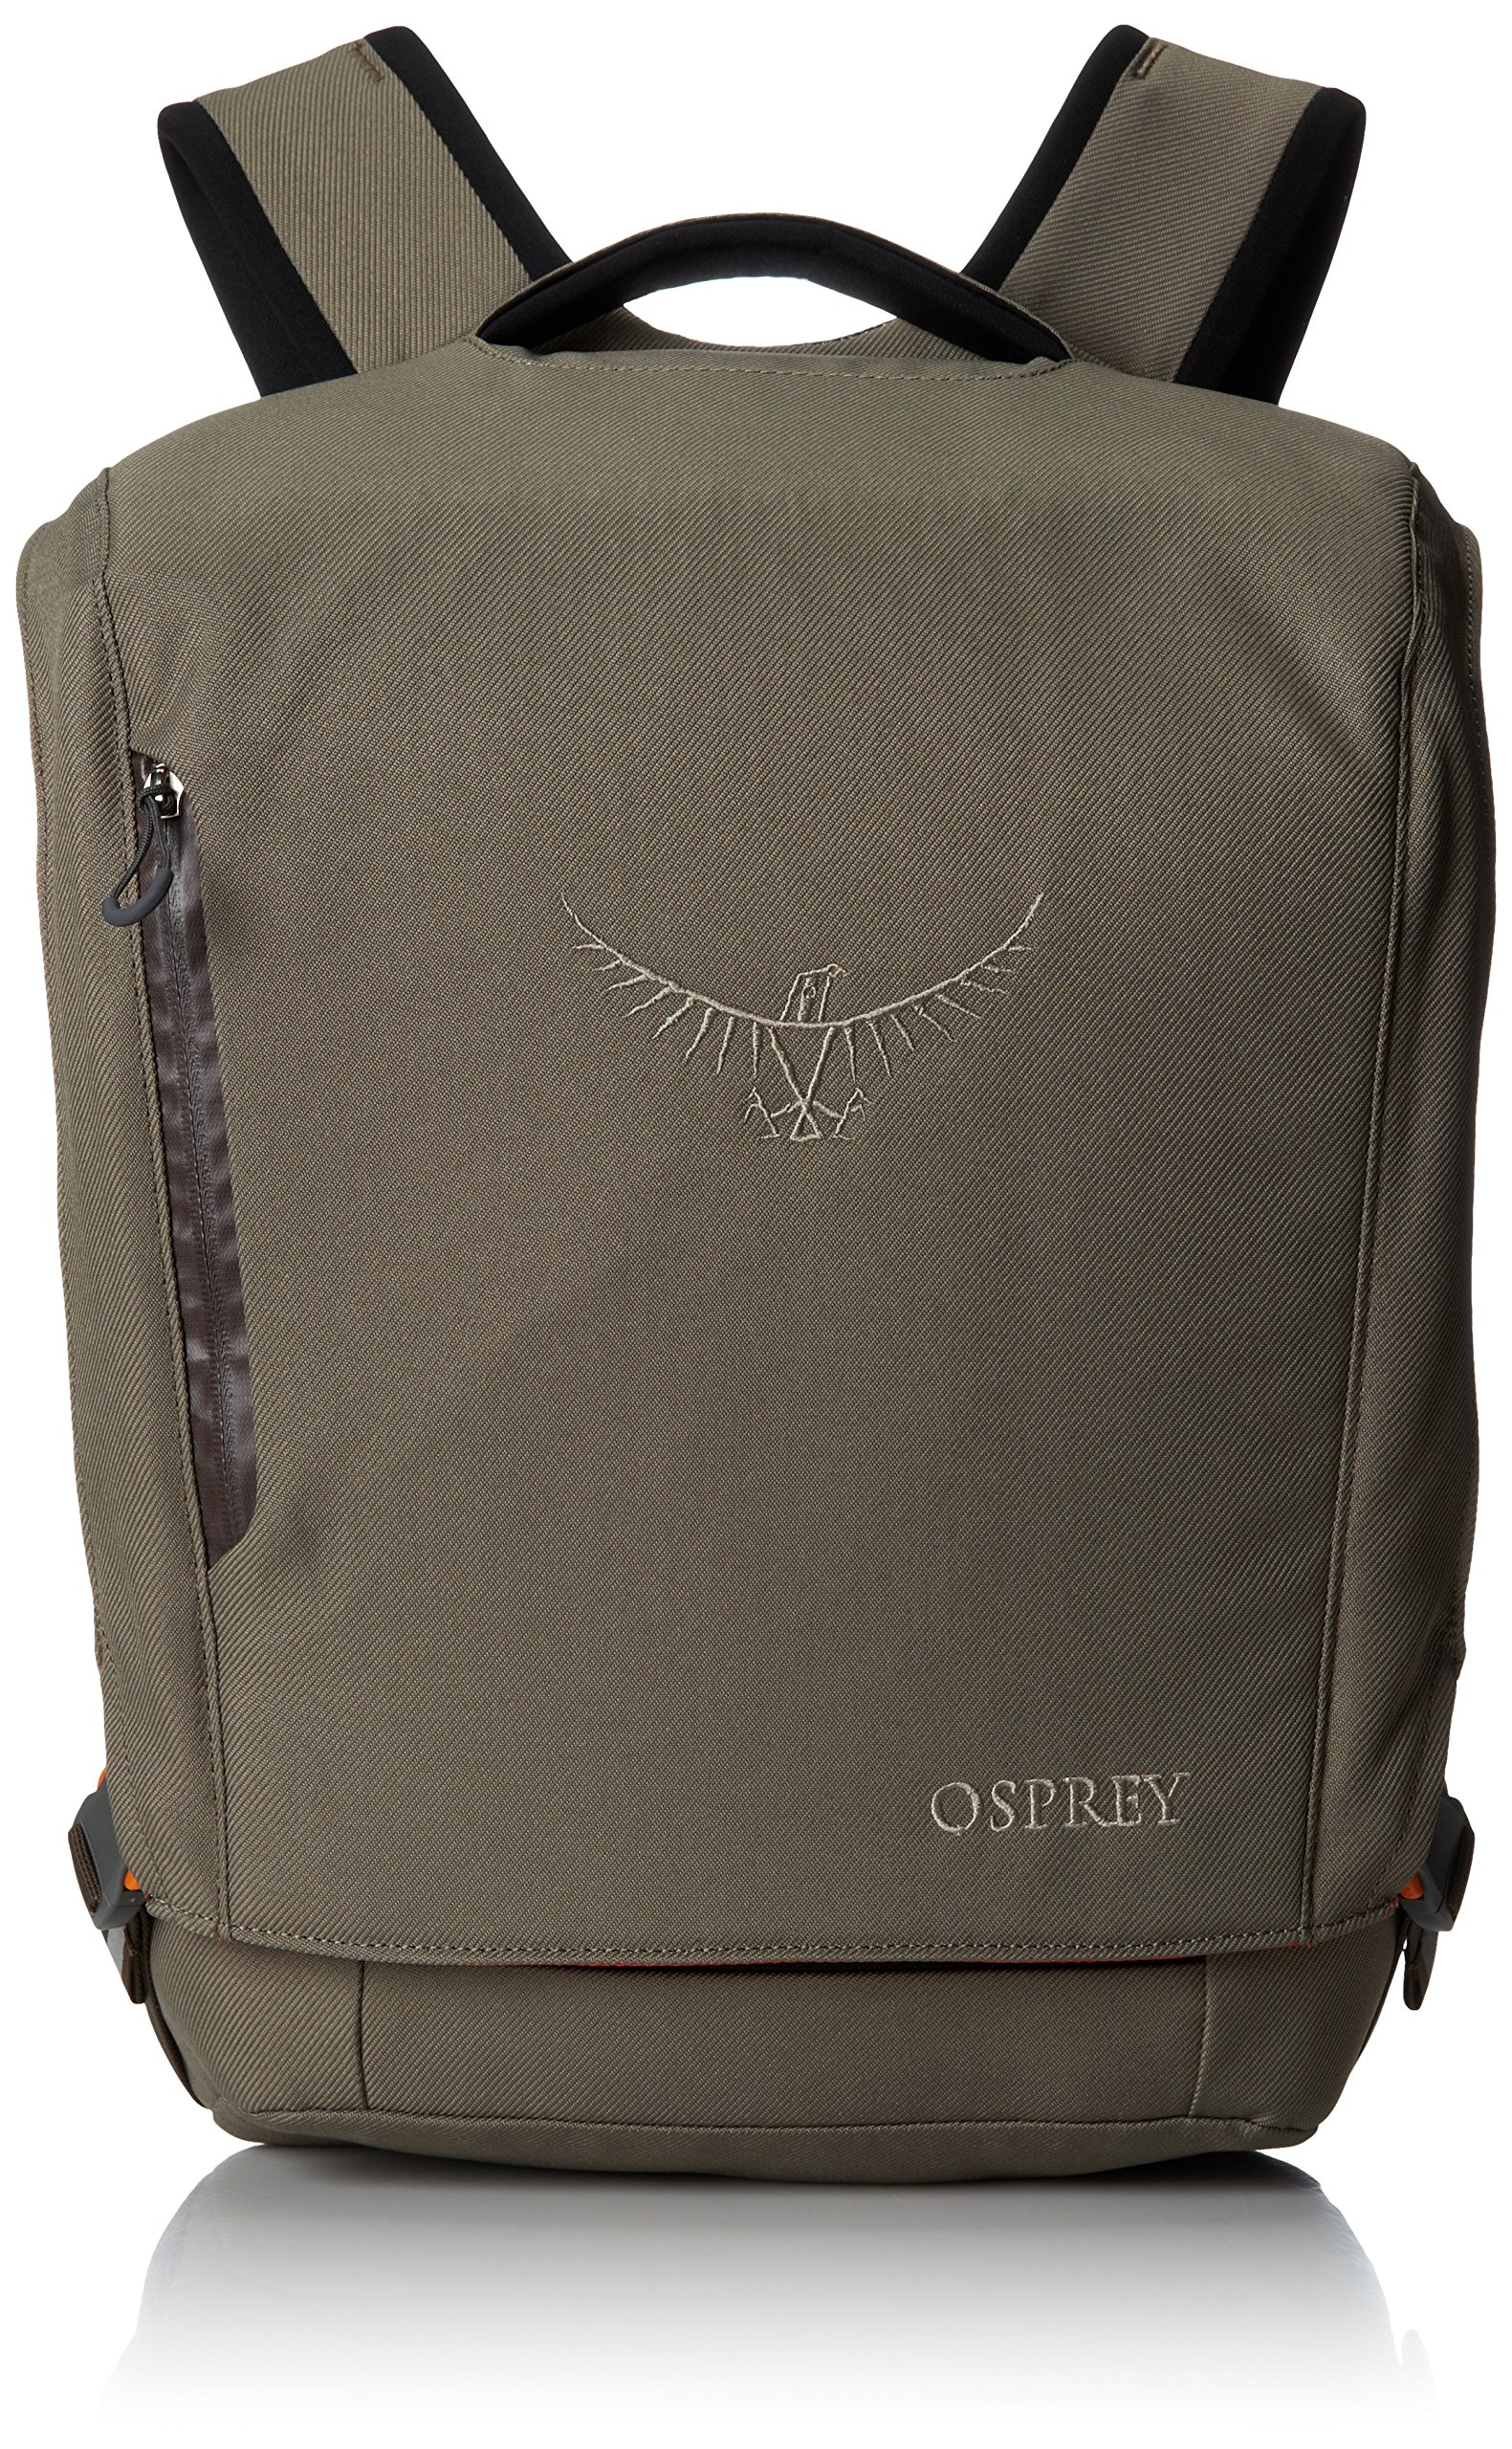 Osprey Packs Pixel Port Daypack (Spring 2016 Model), Chestnut Brown